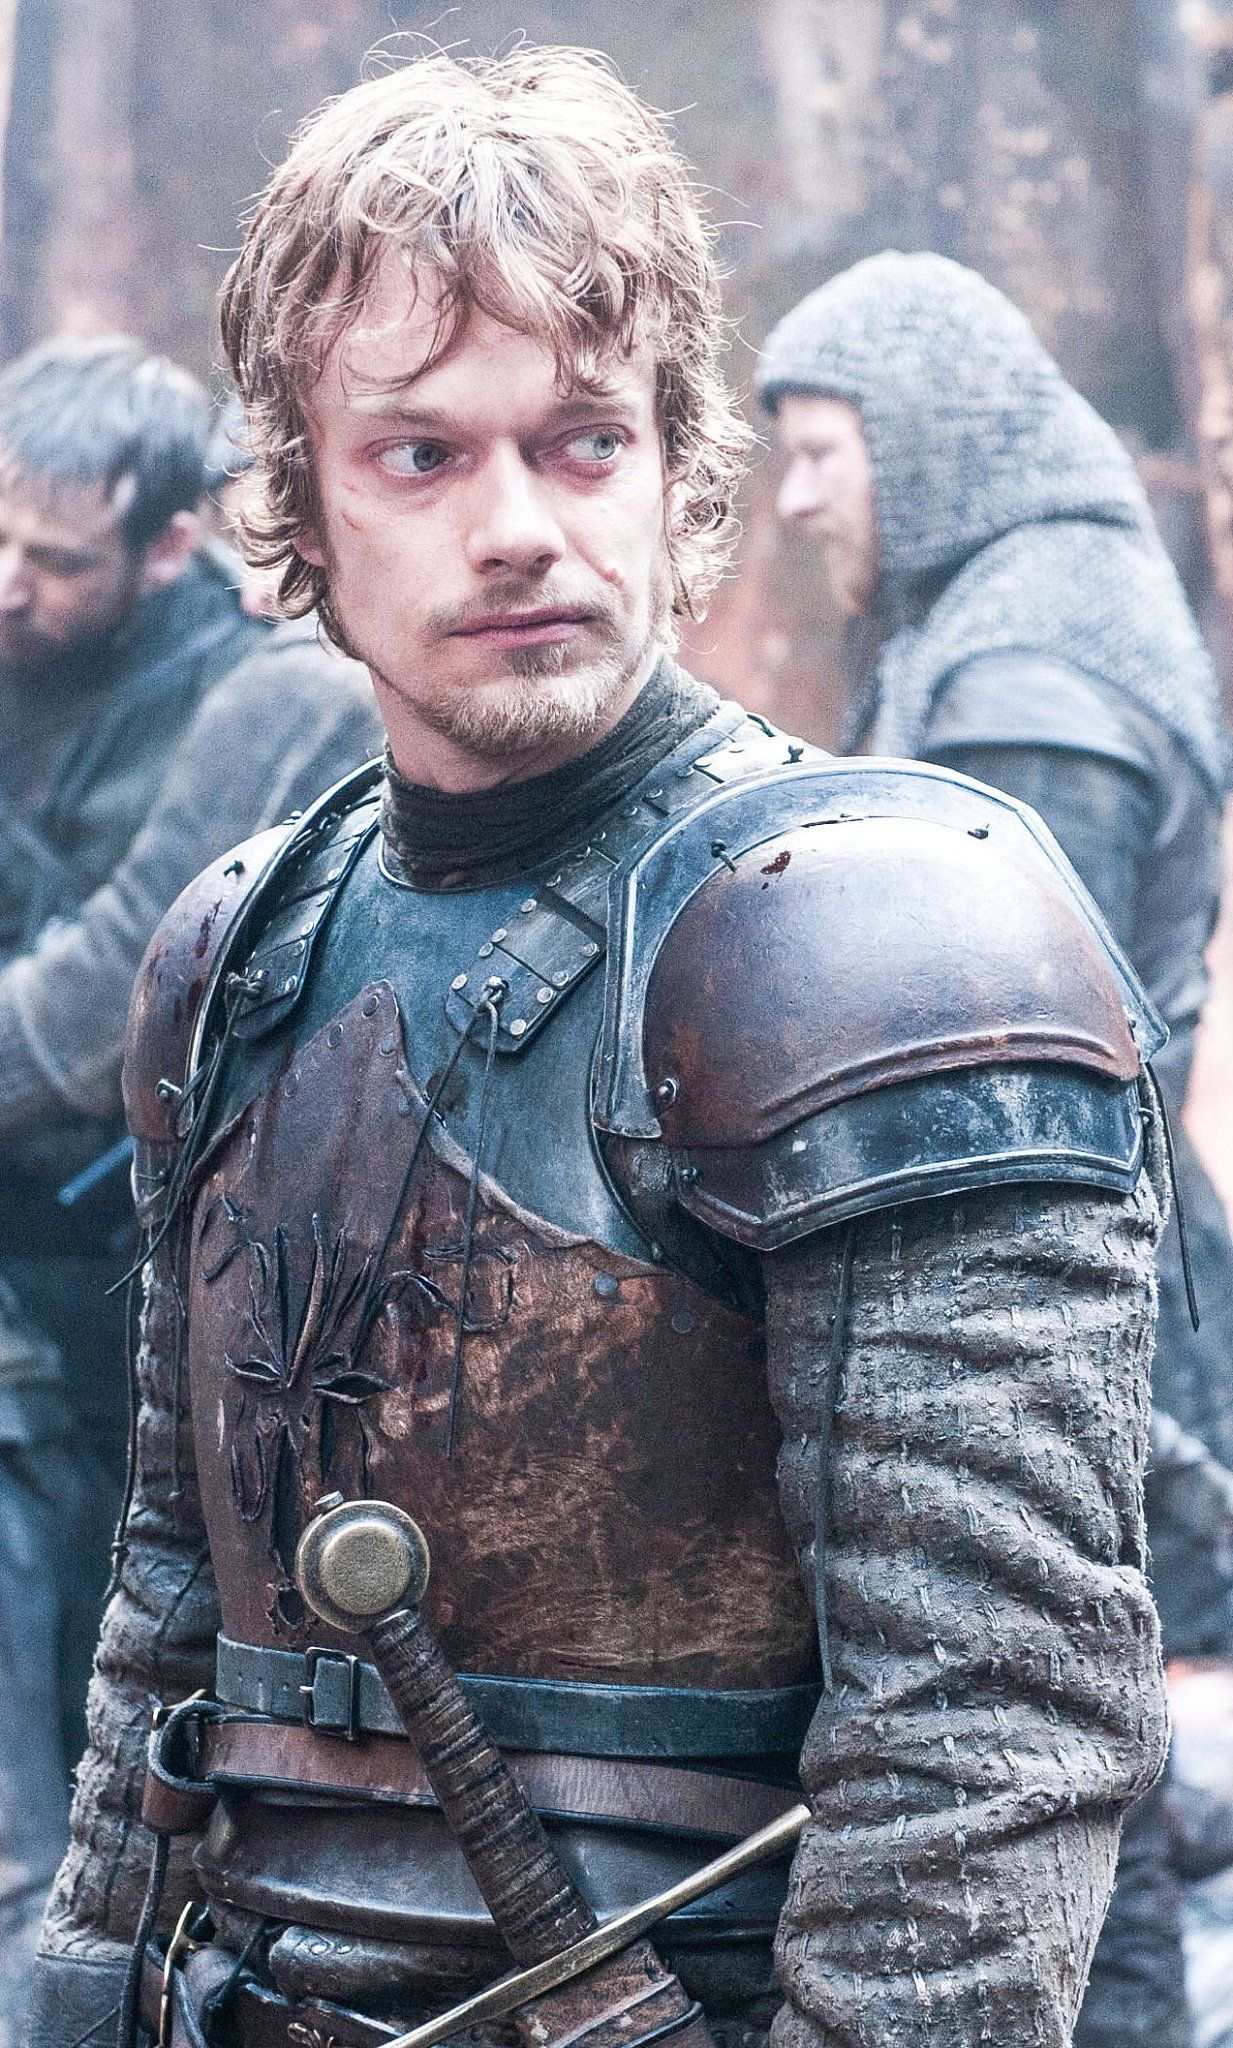 Game Of Thrones Personnage : thrones, personnage, Armor, Thrones, Google, Search, Personnages,, Costumes, Thrones,, Heros